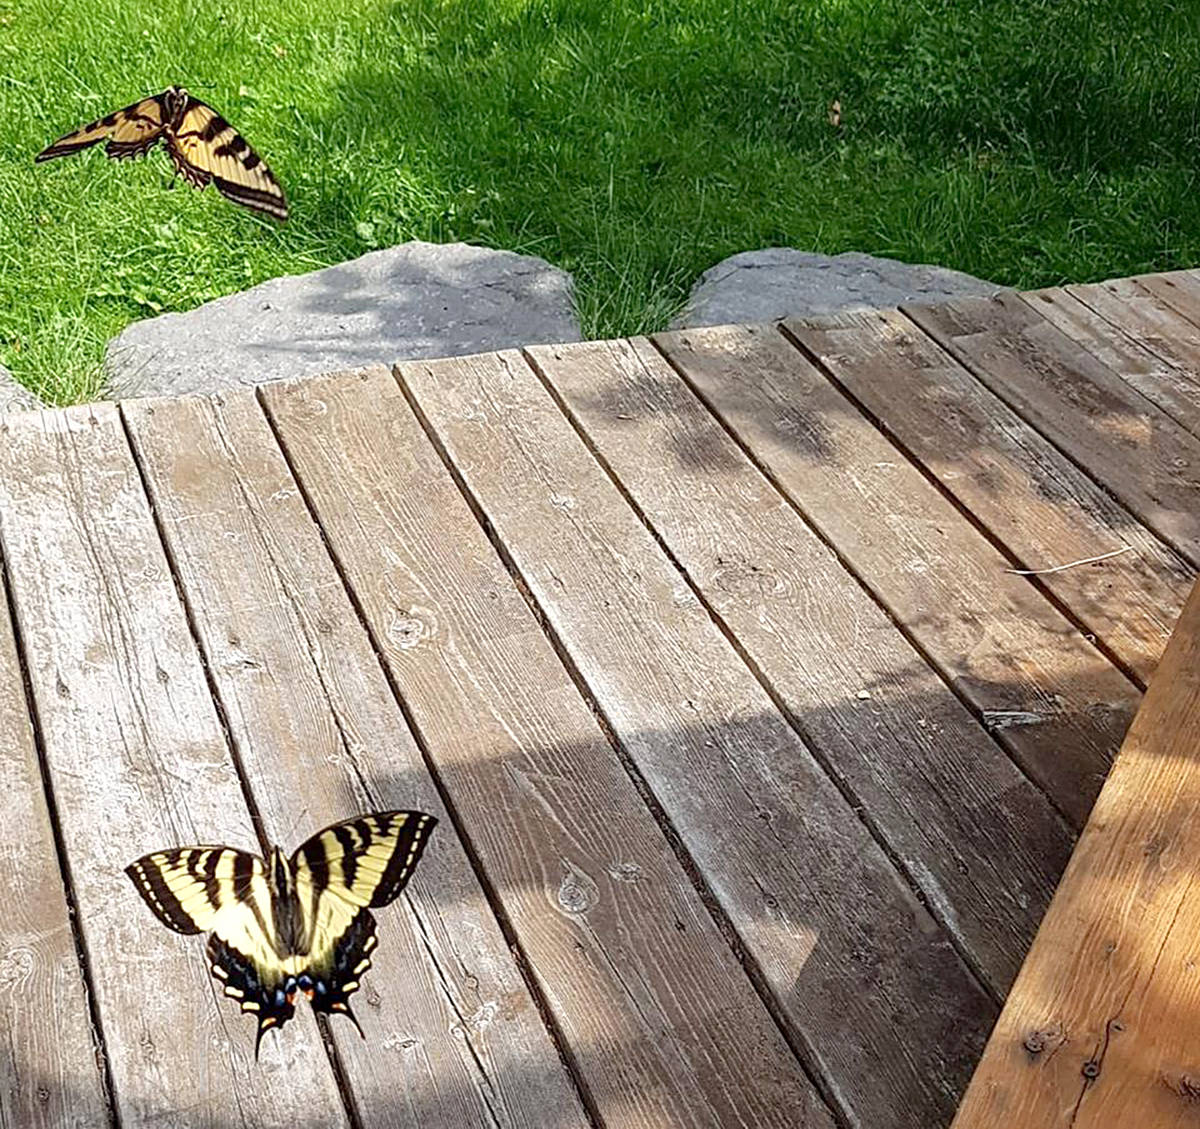 Tanya Henton captured all these wildlife pictures in the backyard of her Langley City home. (Special to the Langley Advance)